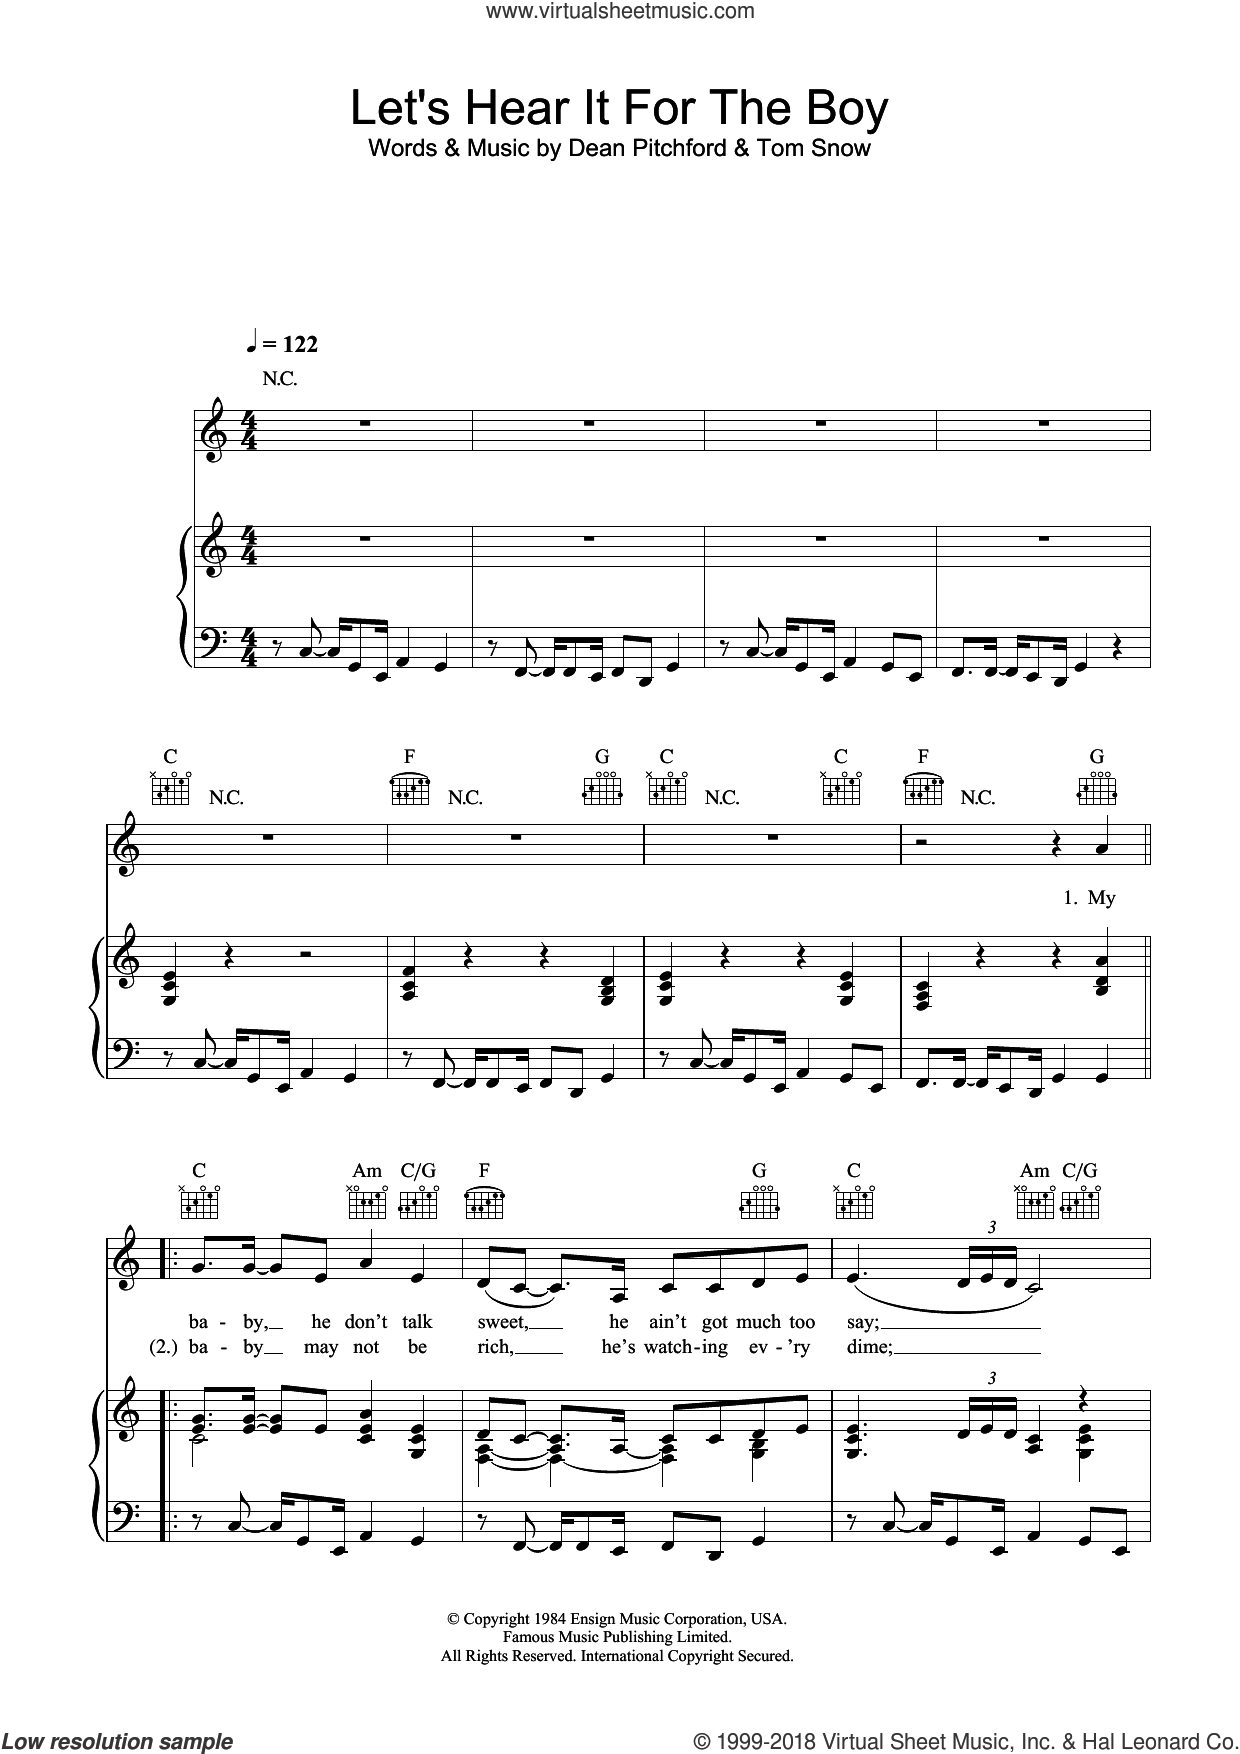 Let's Hear It For The Boy sheet music for voice, piano or guitar by Tom Snow and Dean Pitchford. Score Image Preview.